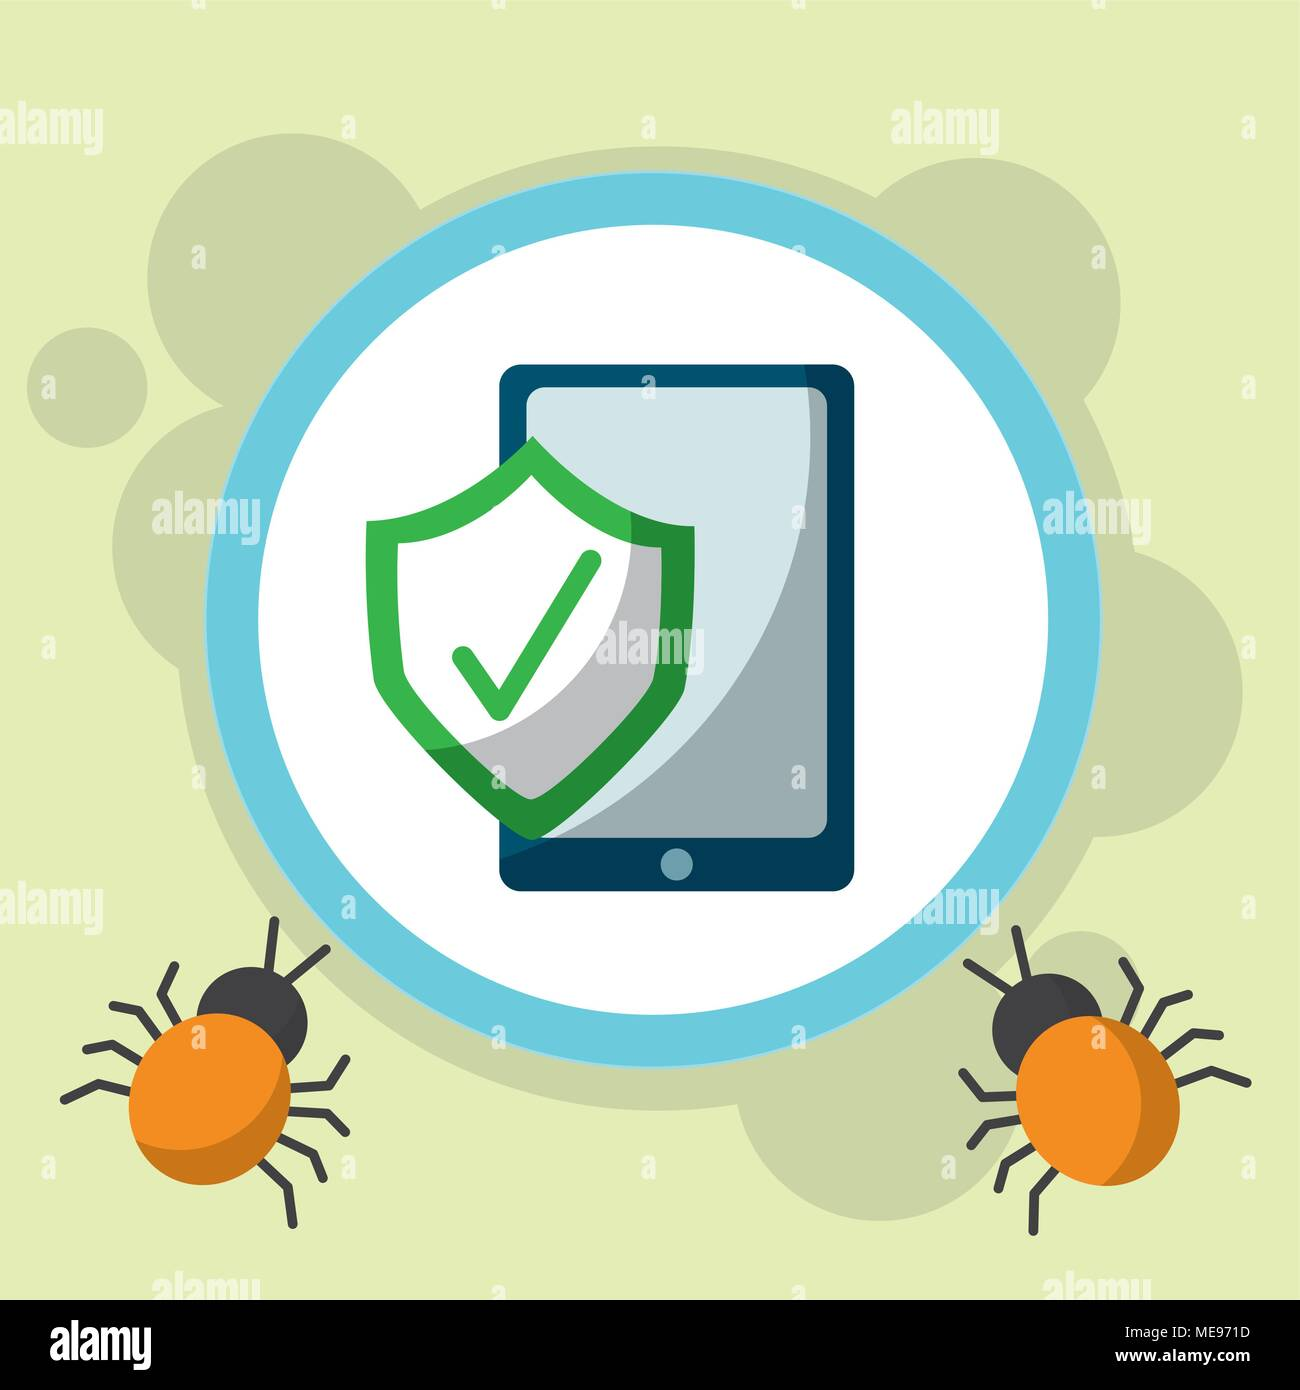 cyber security concept - Stock Vector